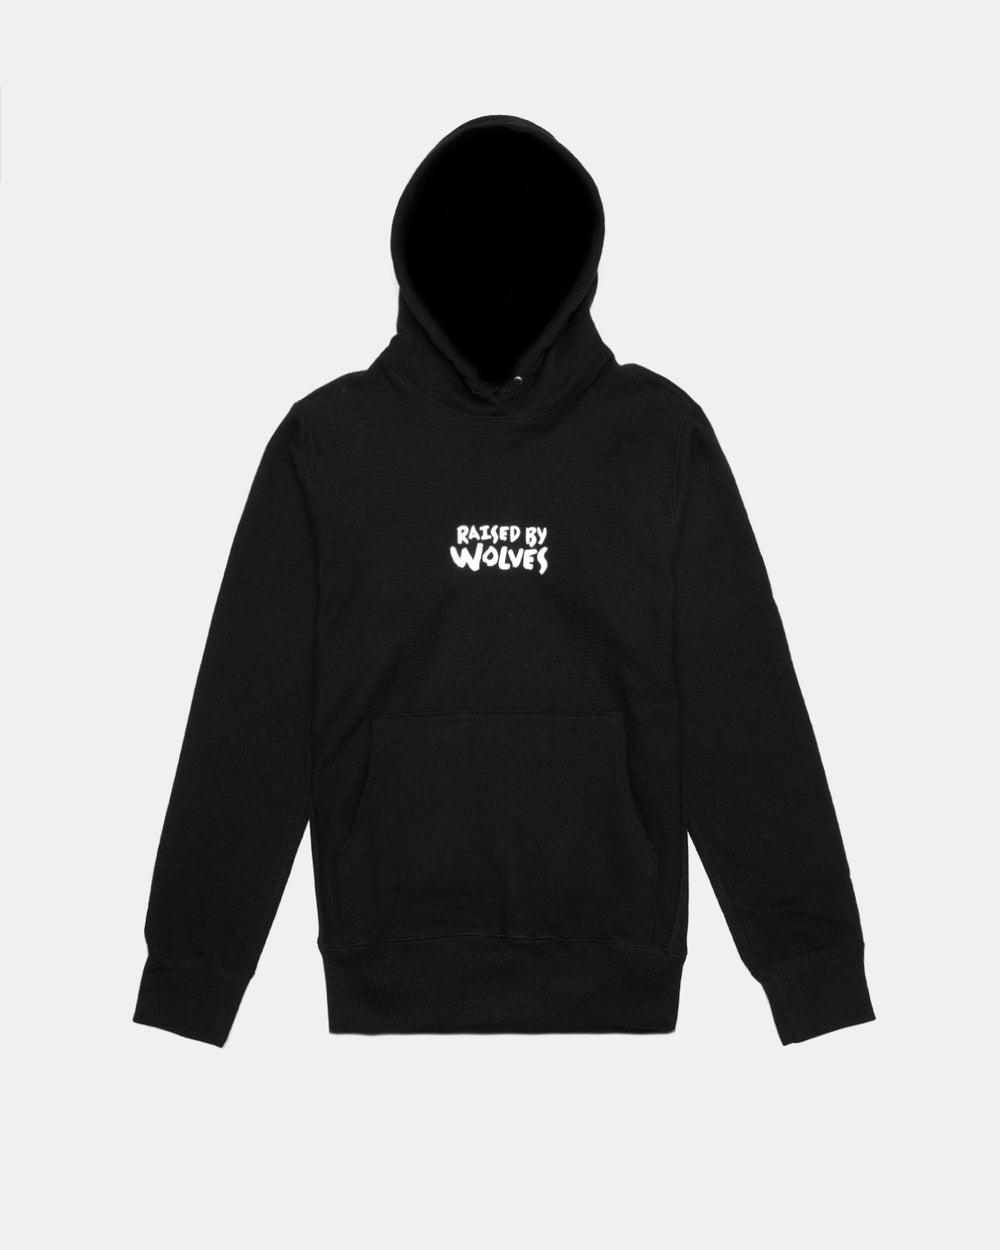 Raised by Wolves - Tag Logo Hooded Sweatshirt (Black)